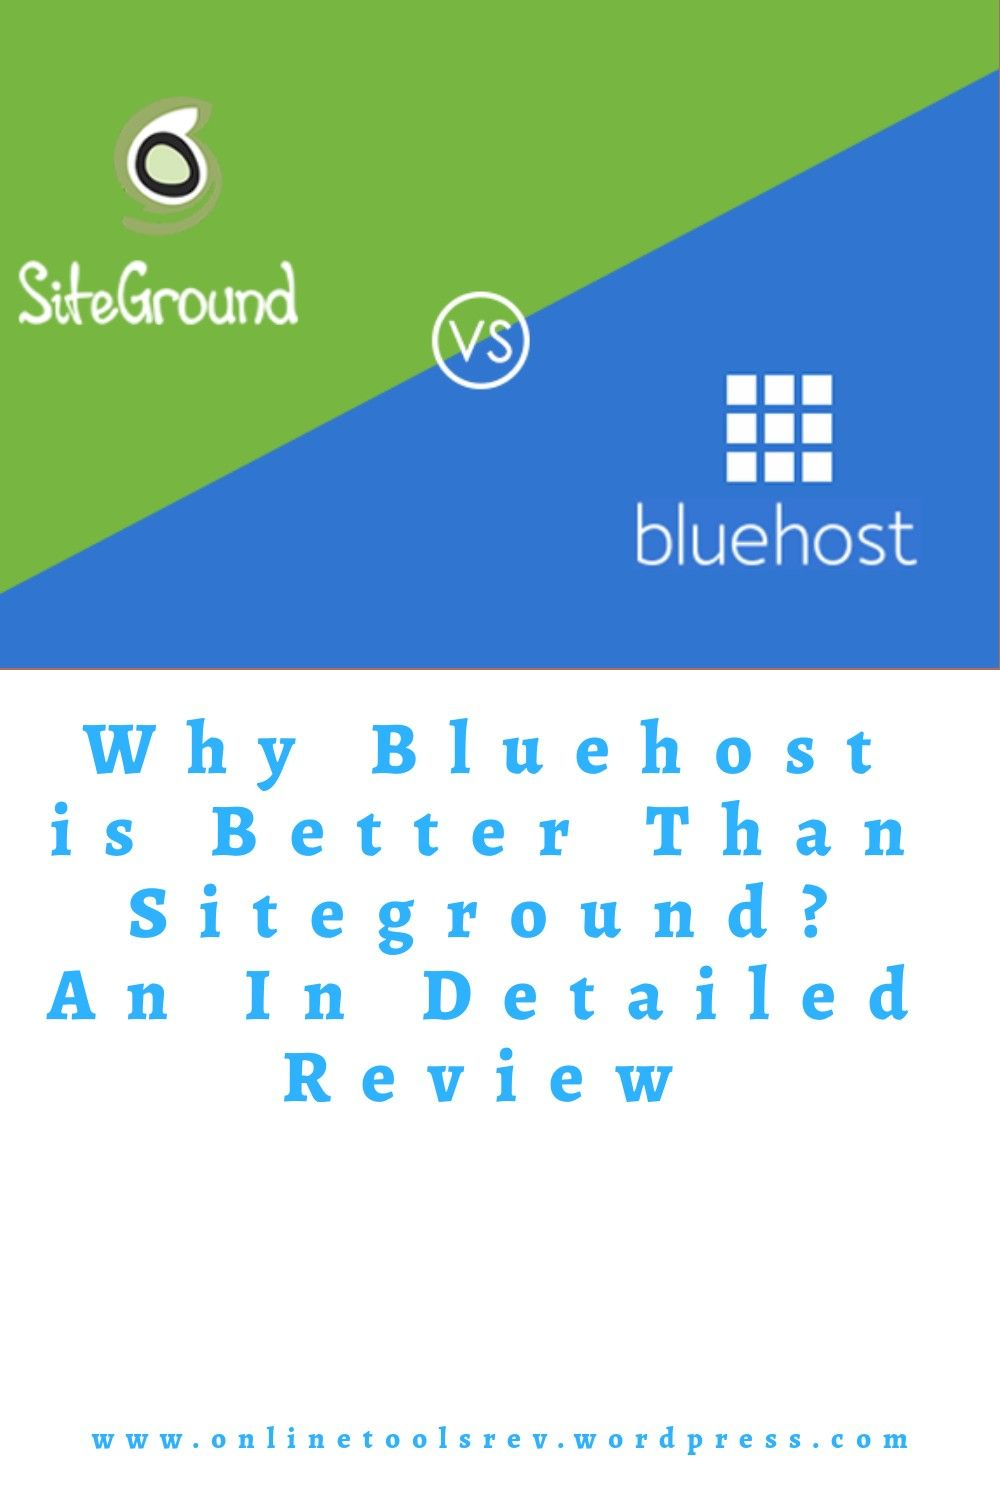 Bluehost Vs Siteground Why Bluehost Is Better Than Siteground Review 2020 In 2020 Siteground Bluehost Vs Siteground Siteground Review